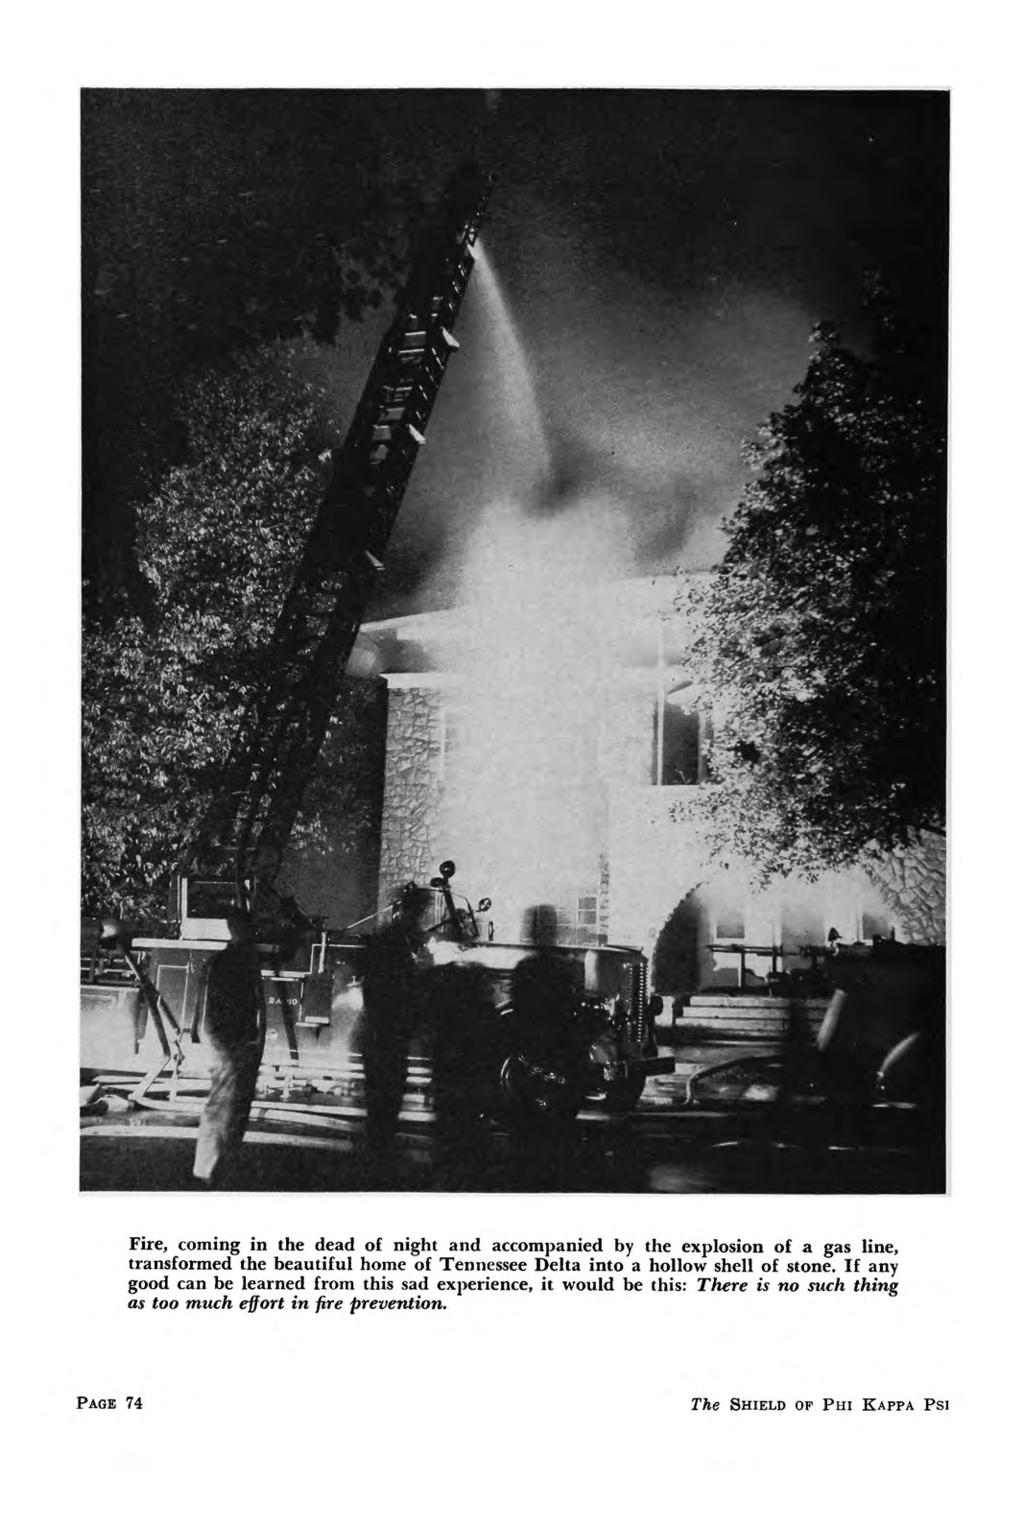 Fire, coming in the dead of night and accompanied by the explosion of a gas line, transformed the beautiful home of Tennessee Delta into a hollow shell of stone.